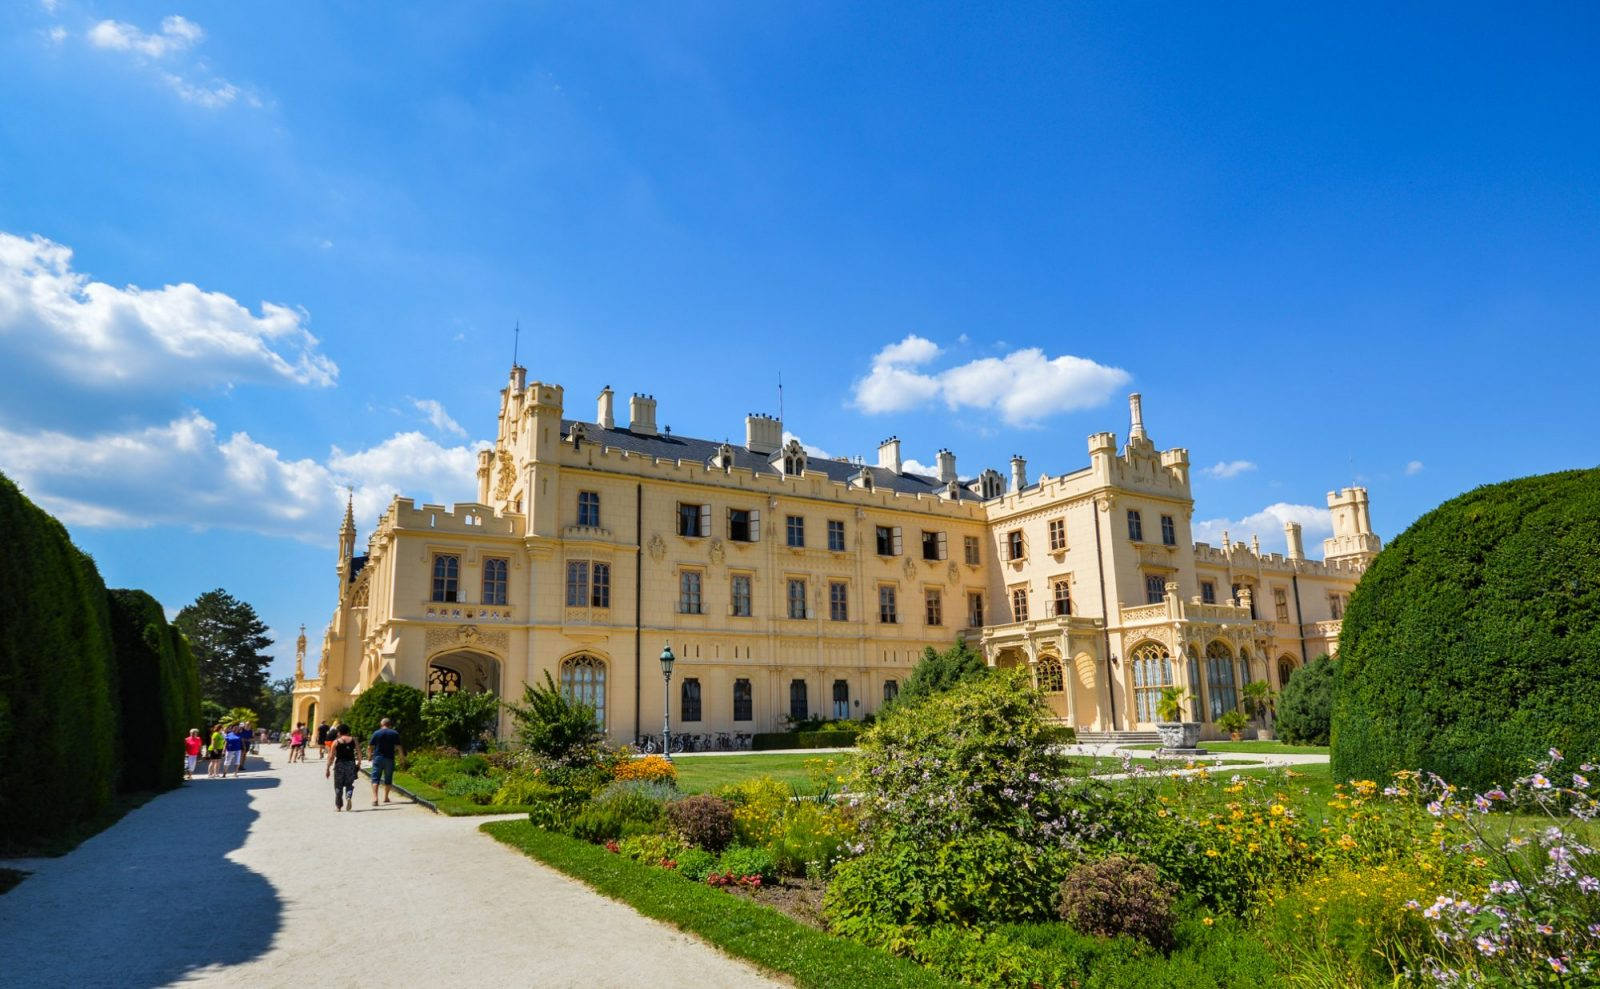 Lednice Chateau in South Moravia